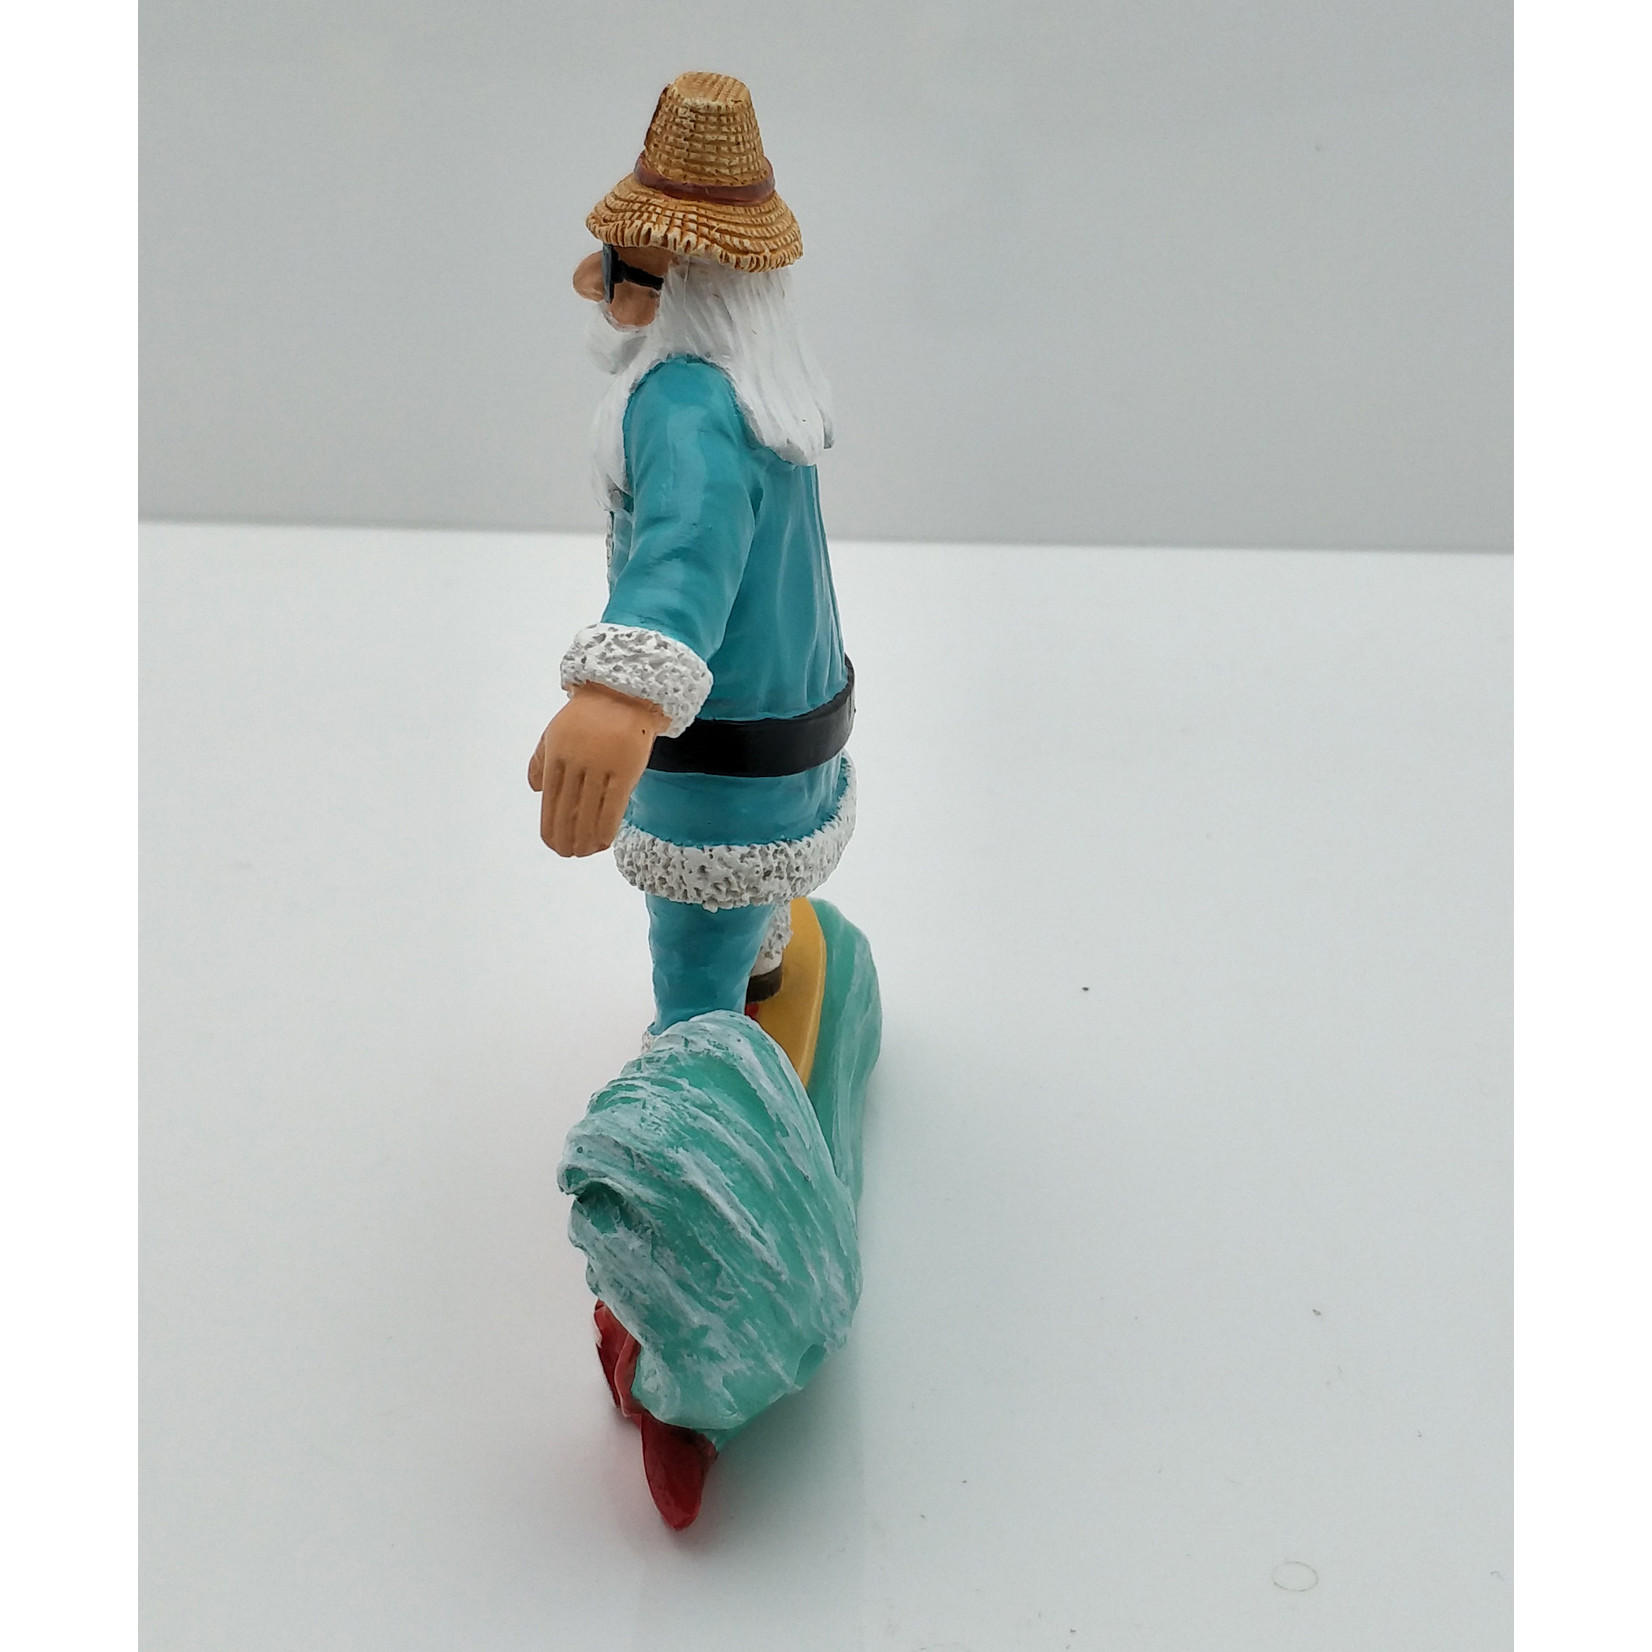 Billy Claus Ornament